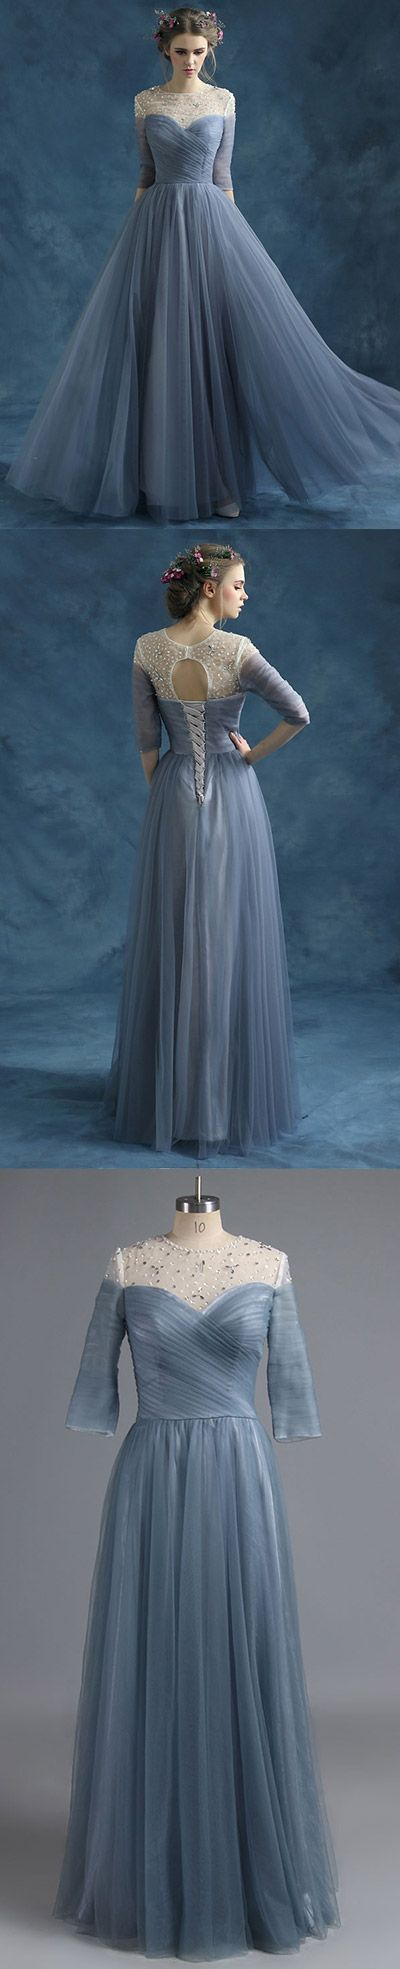 Grey prom dresses long formal dresses modest scoop neck party